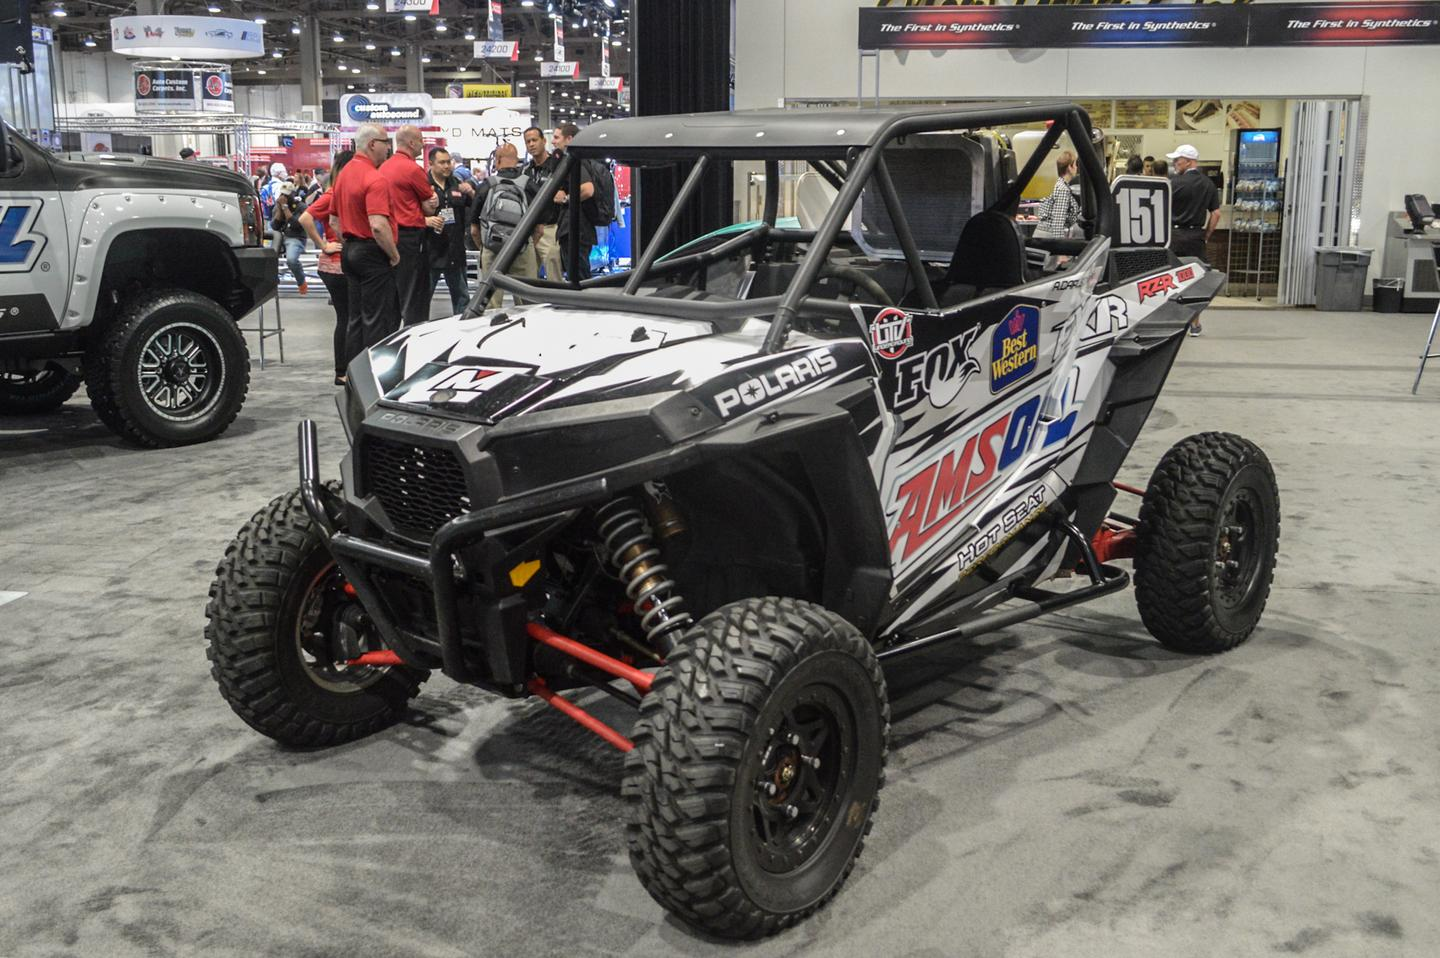 This Polaris side-by-side was the first off-roader to greet us, seconds after we began touring the SEMA floor (Photo: C.C. Weiss/Gizmag)